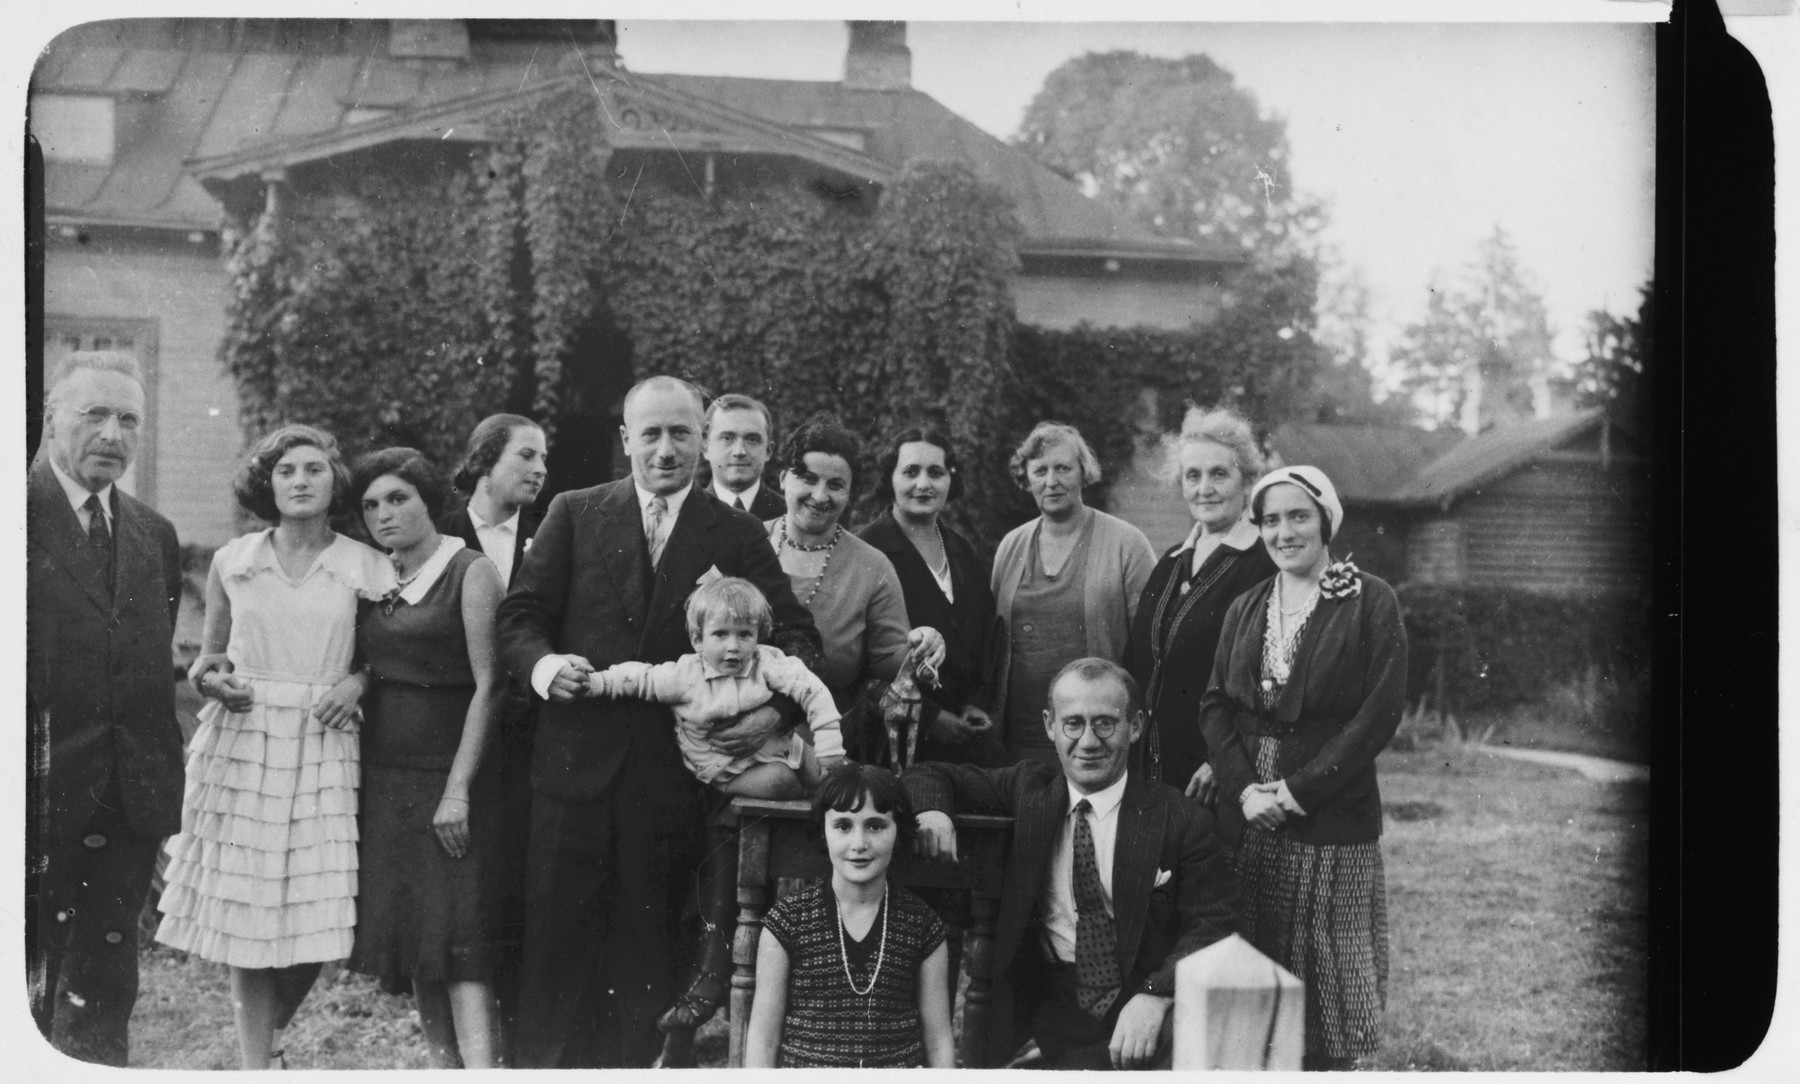 Portrait of an extended family before the war.  Pictured are Isa Birger (third from left), Chaim Blumstein (fifth from  left and center), Alexandre Blumstein (center), Estera Boochin Blumstein (seventh from left),  Musia Altfeld (front and center), B. Mejlachowicz (to the right of Musia), Edzia Altfeld (fourth from the right), Thea Boehm (third from right), Grandmother Boochin (second from right).